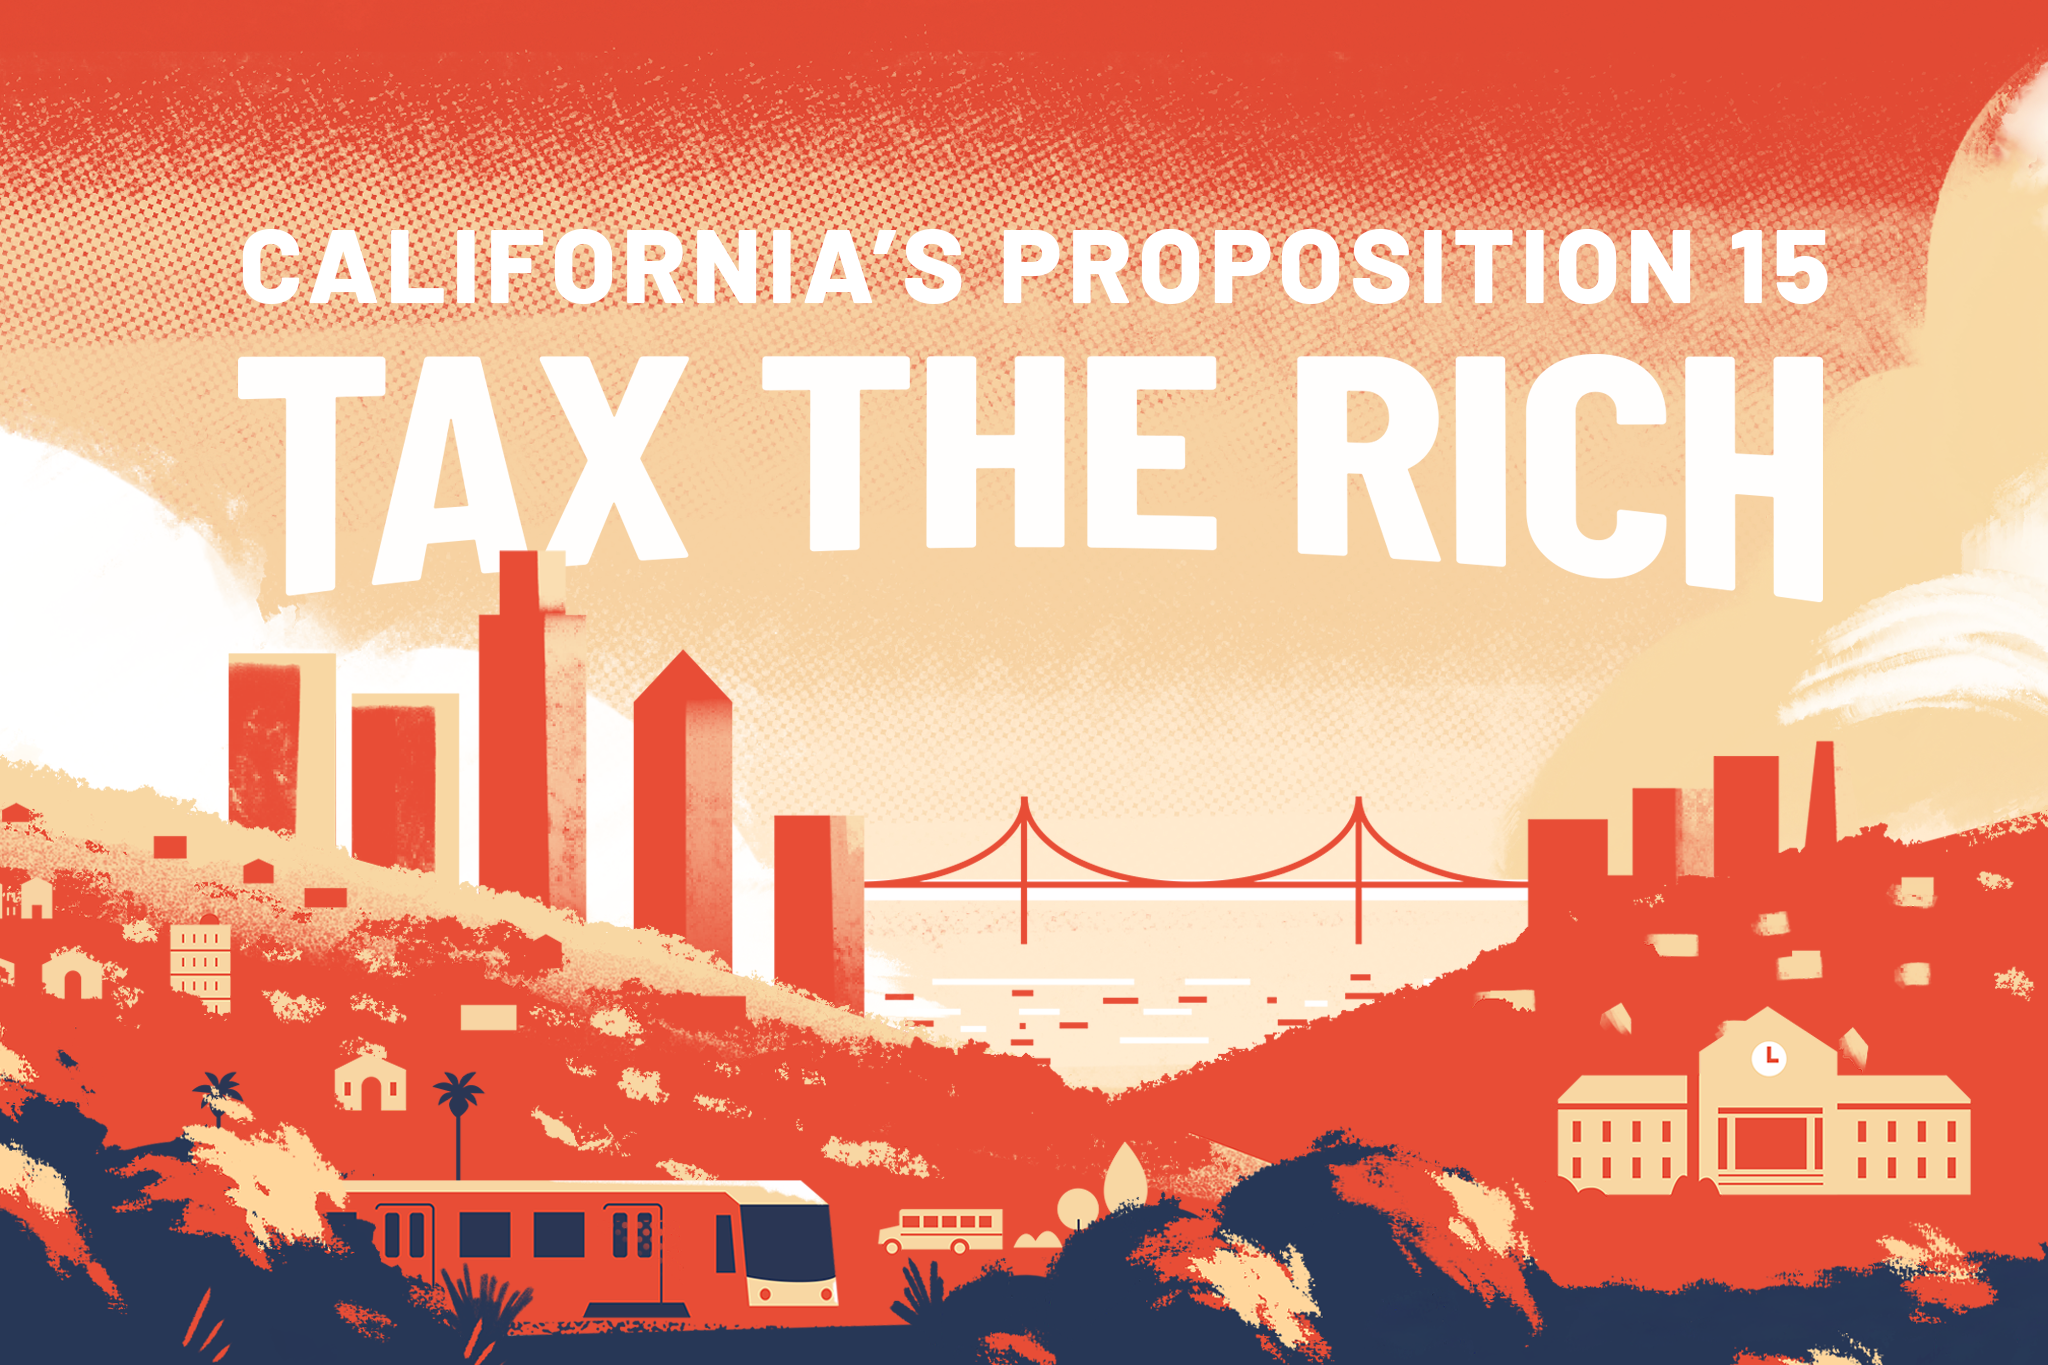 California's Proposition 15: Tax the Rich